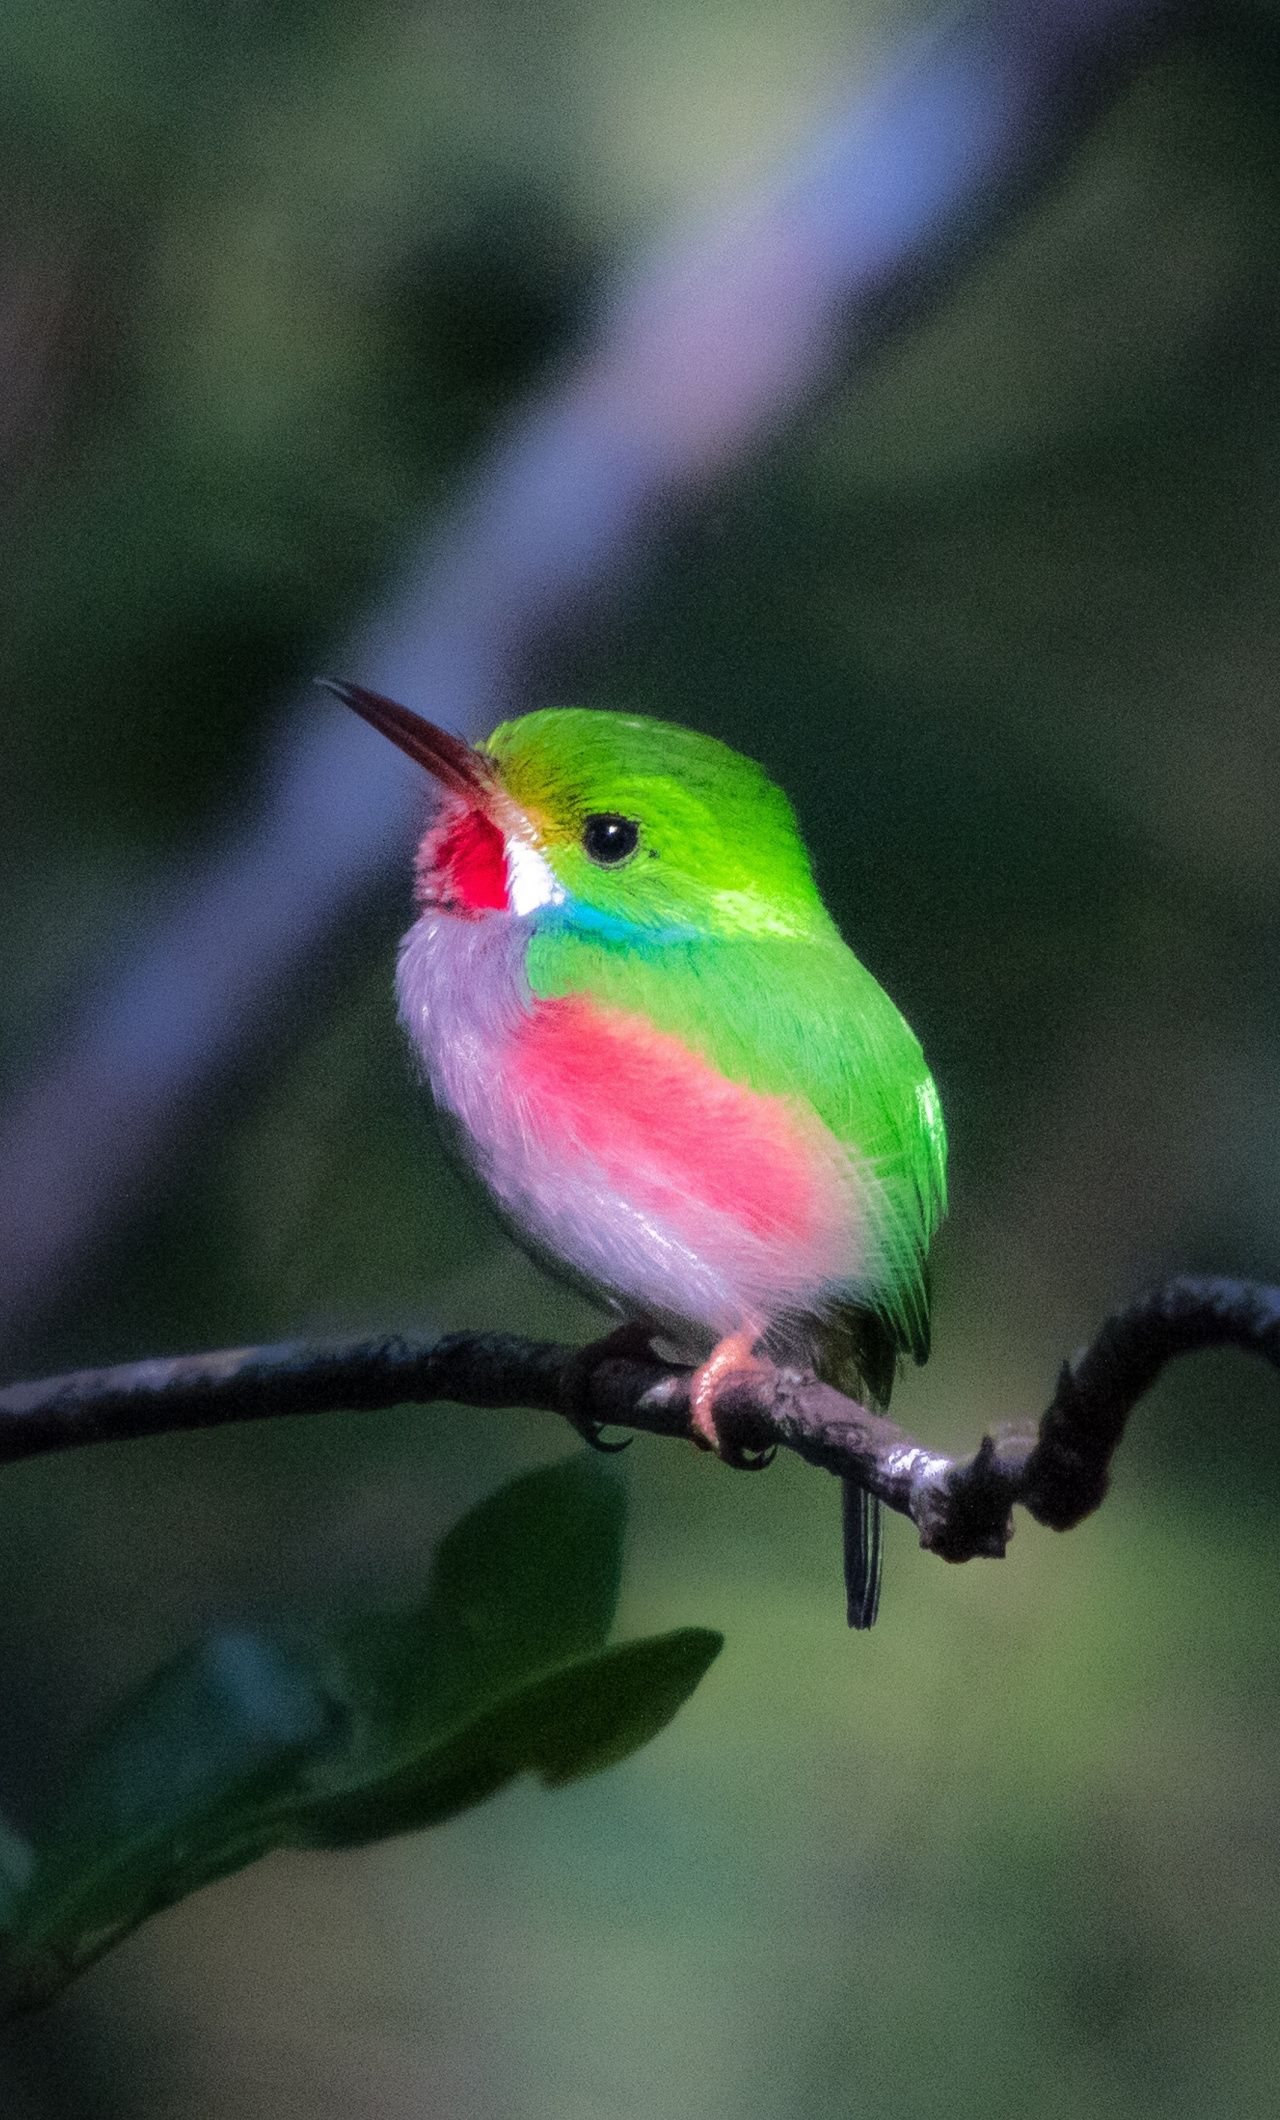 Small Cute Cuba Bird Portrait 1280x2120 Wallpaper Beautiful Birds Nature Birds Pretty Birds